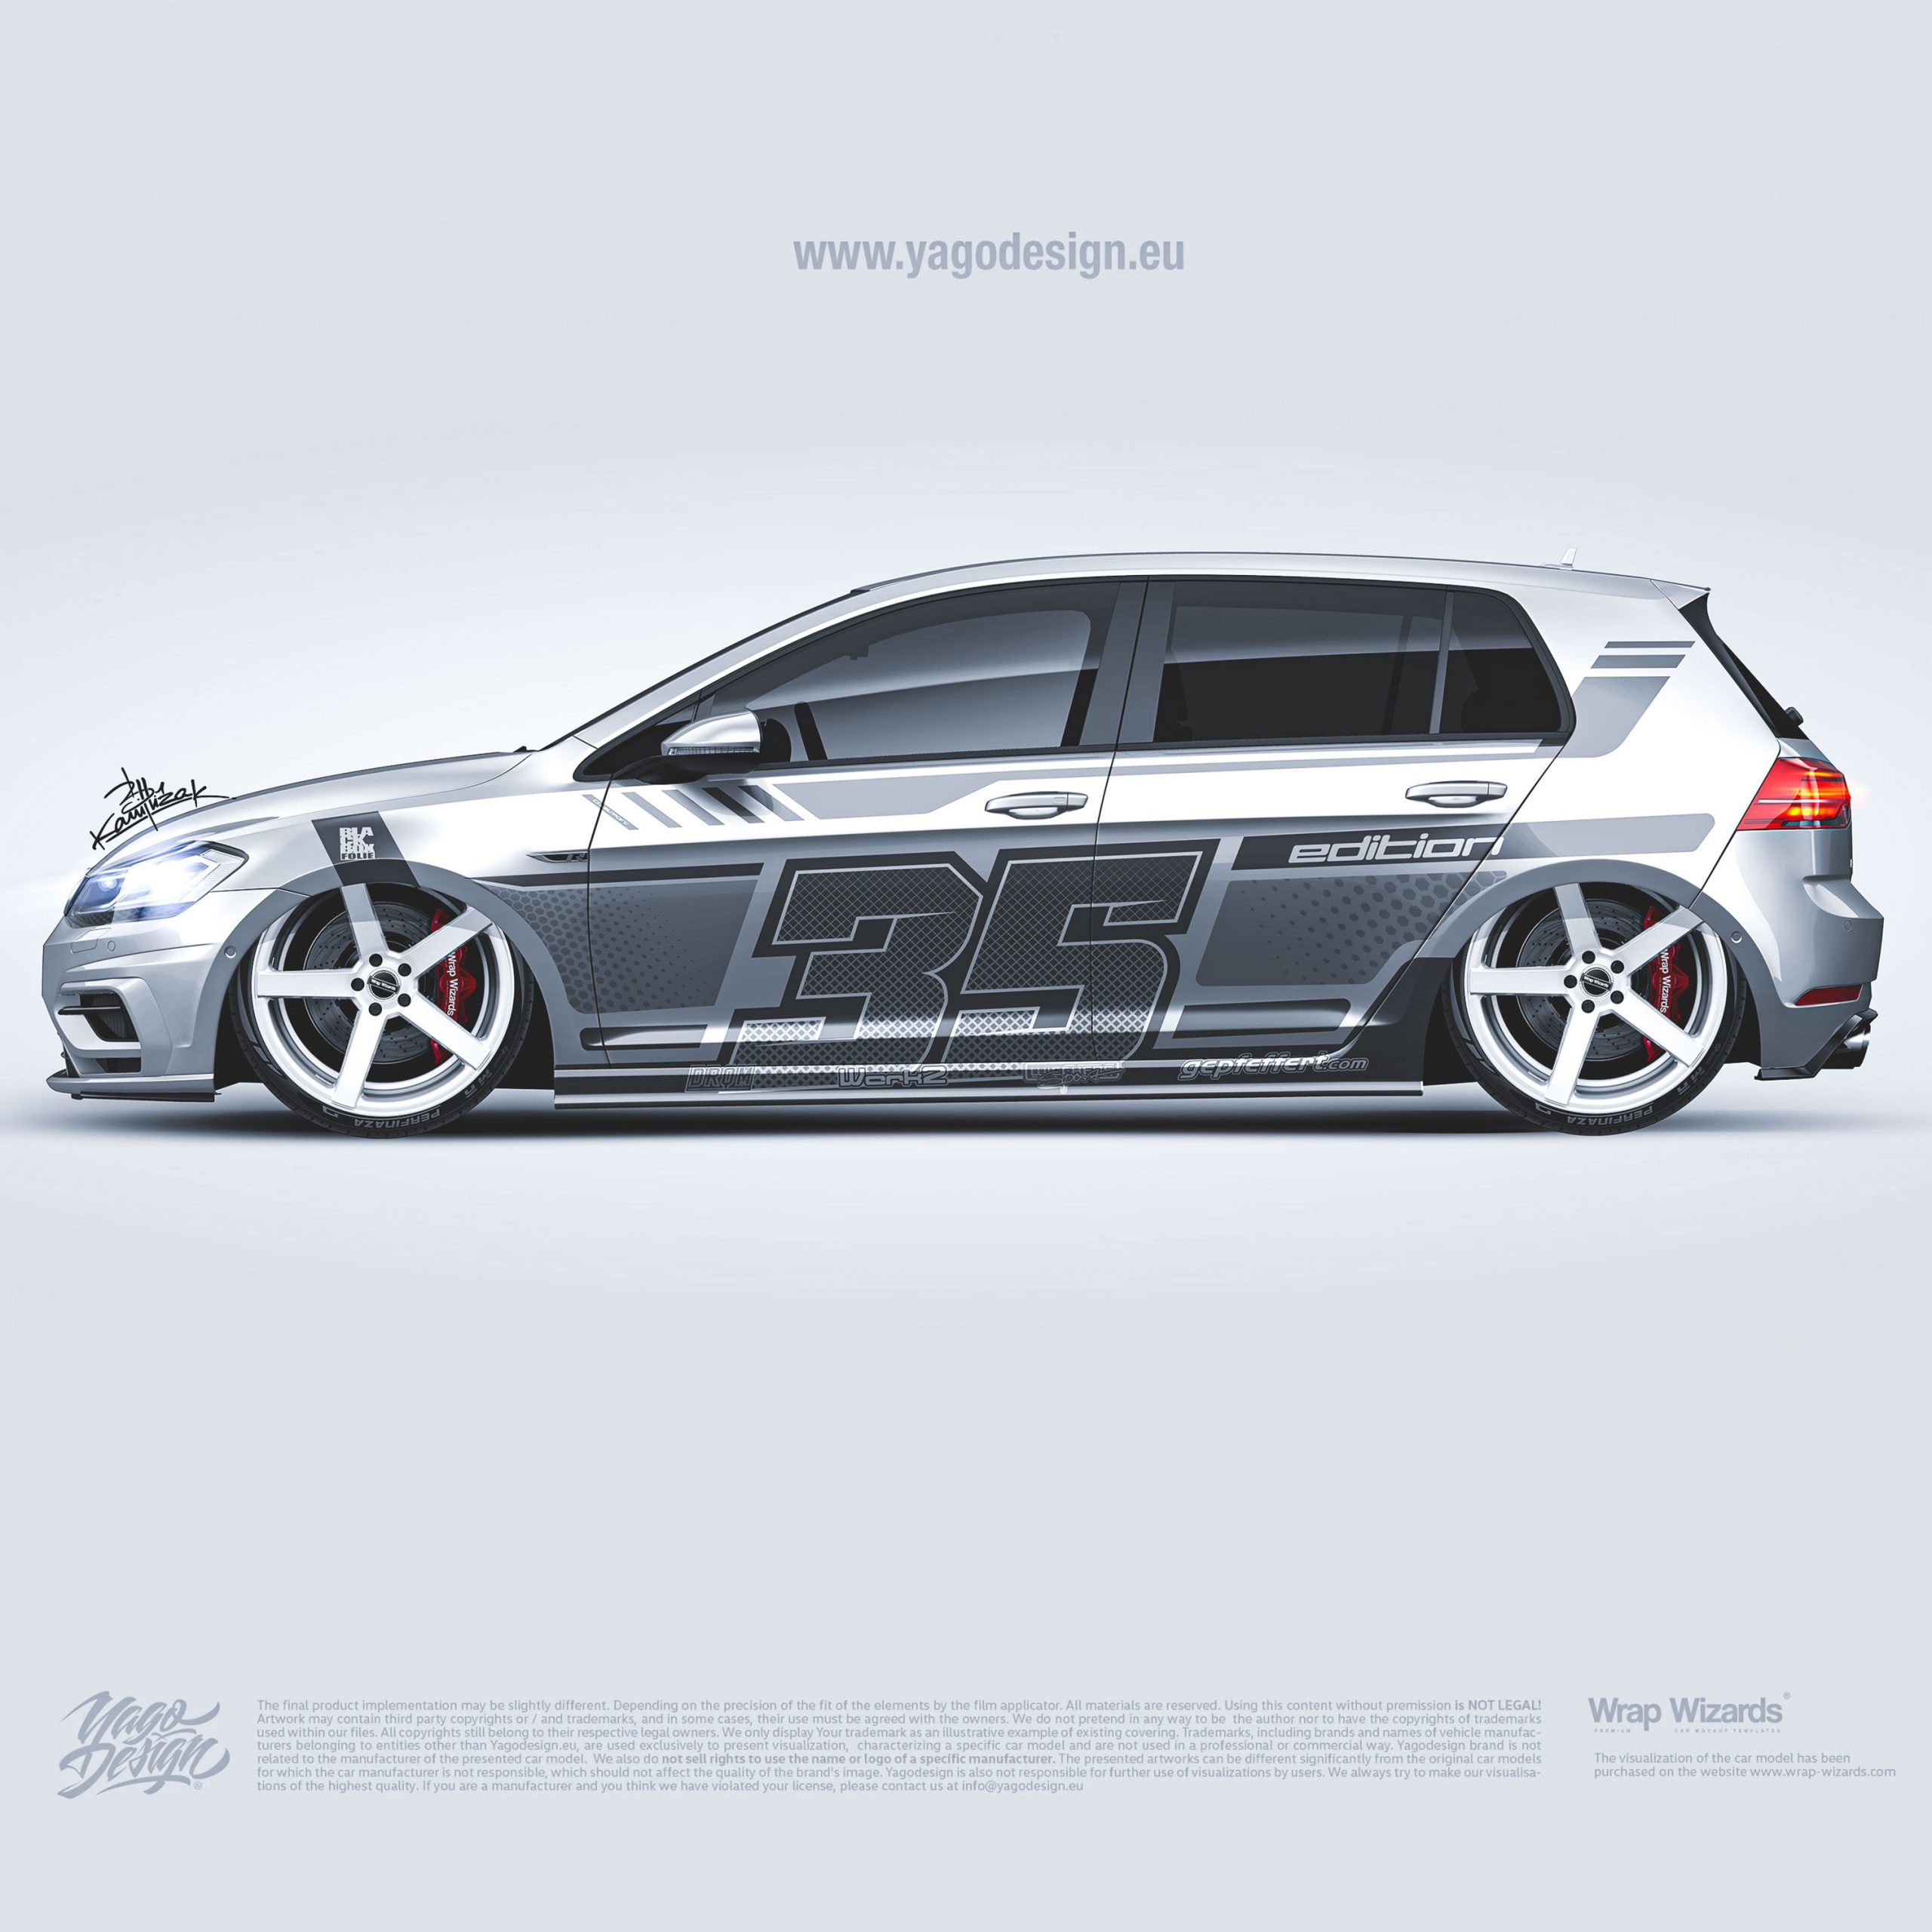 Volkswagen-Golf-MK7–by-Yagodesign-Livery-Design-Car-wrapping-studio